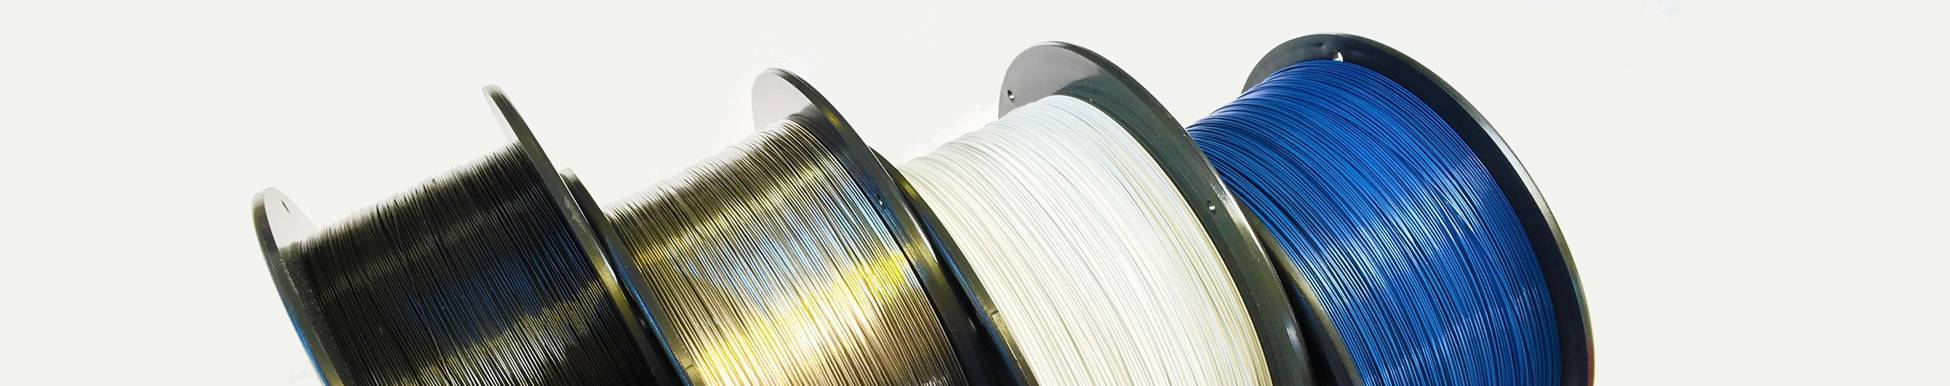 Binding wire galvanized and pvc binding wire for tying four axles wires low carbon steel wire brass wire white pvc coated wire keyboard keysfo Choice Image